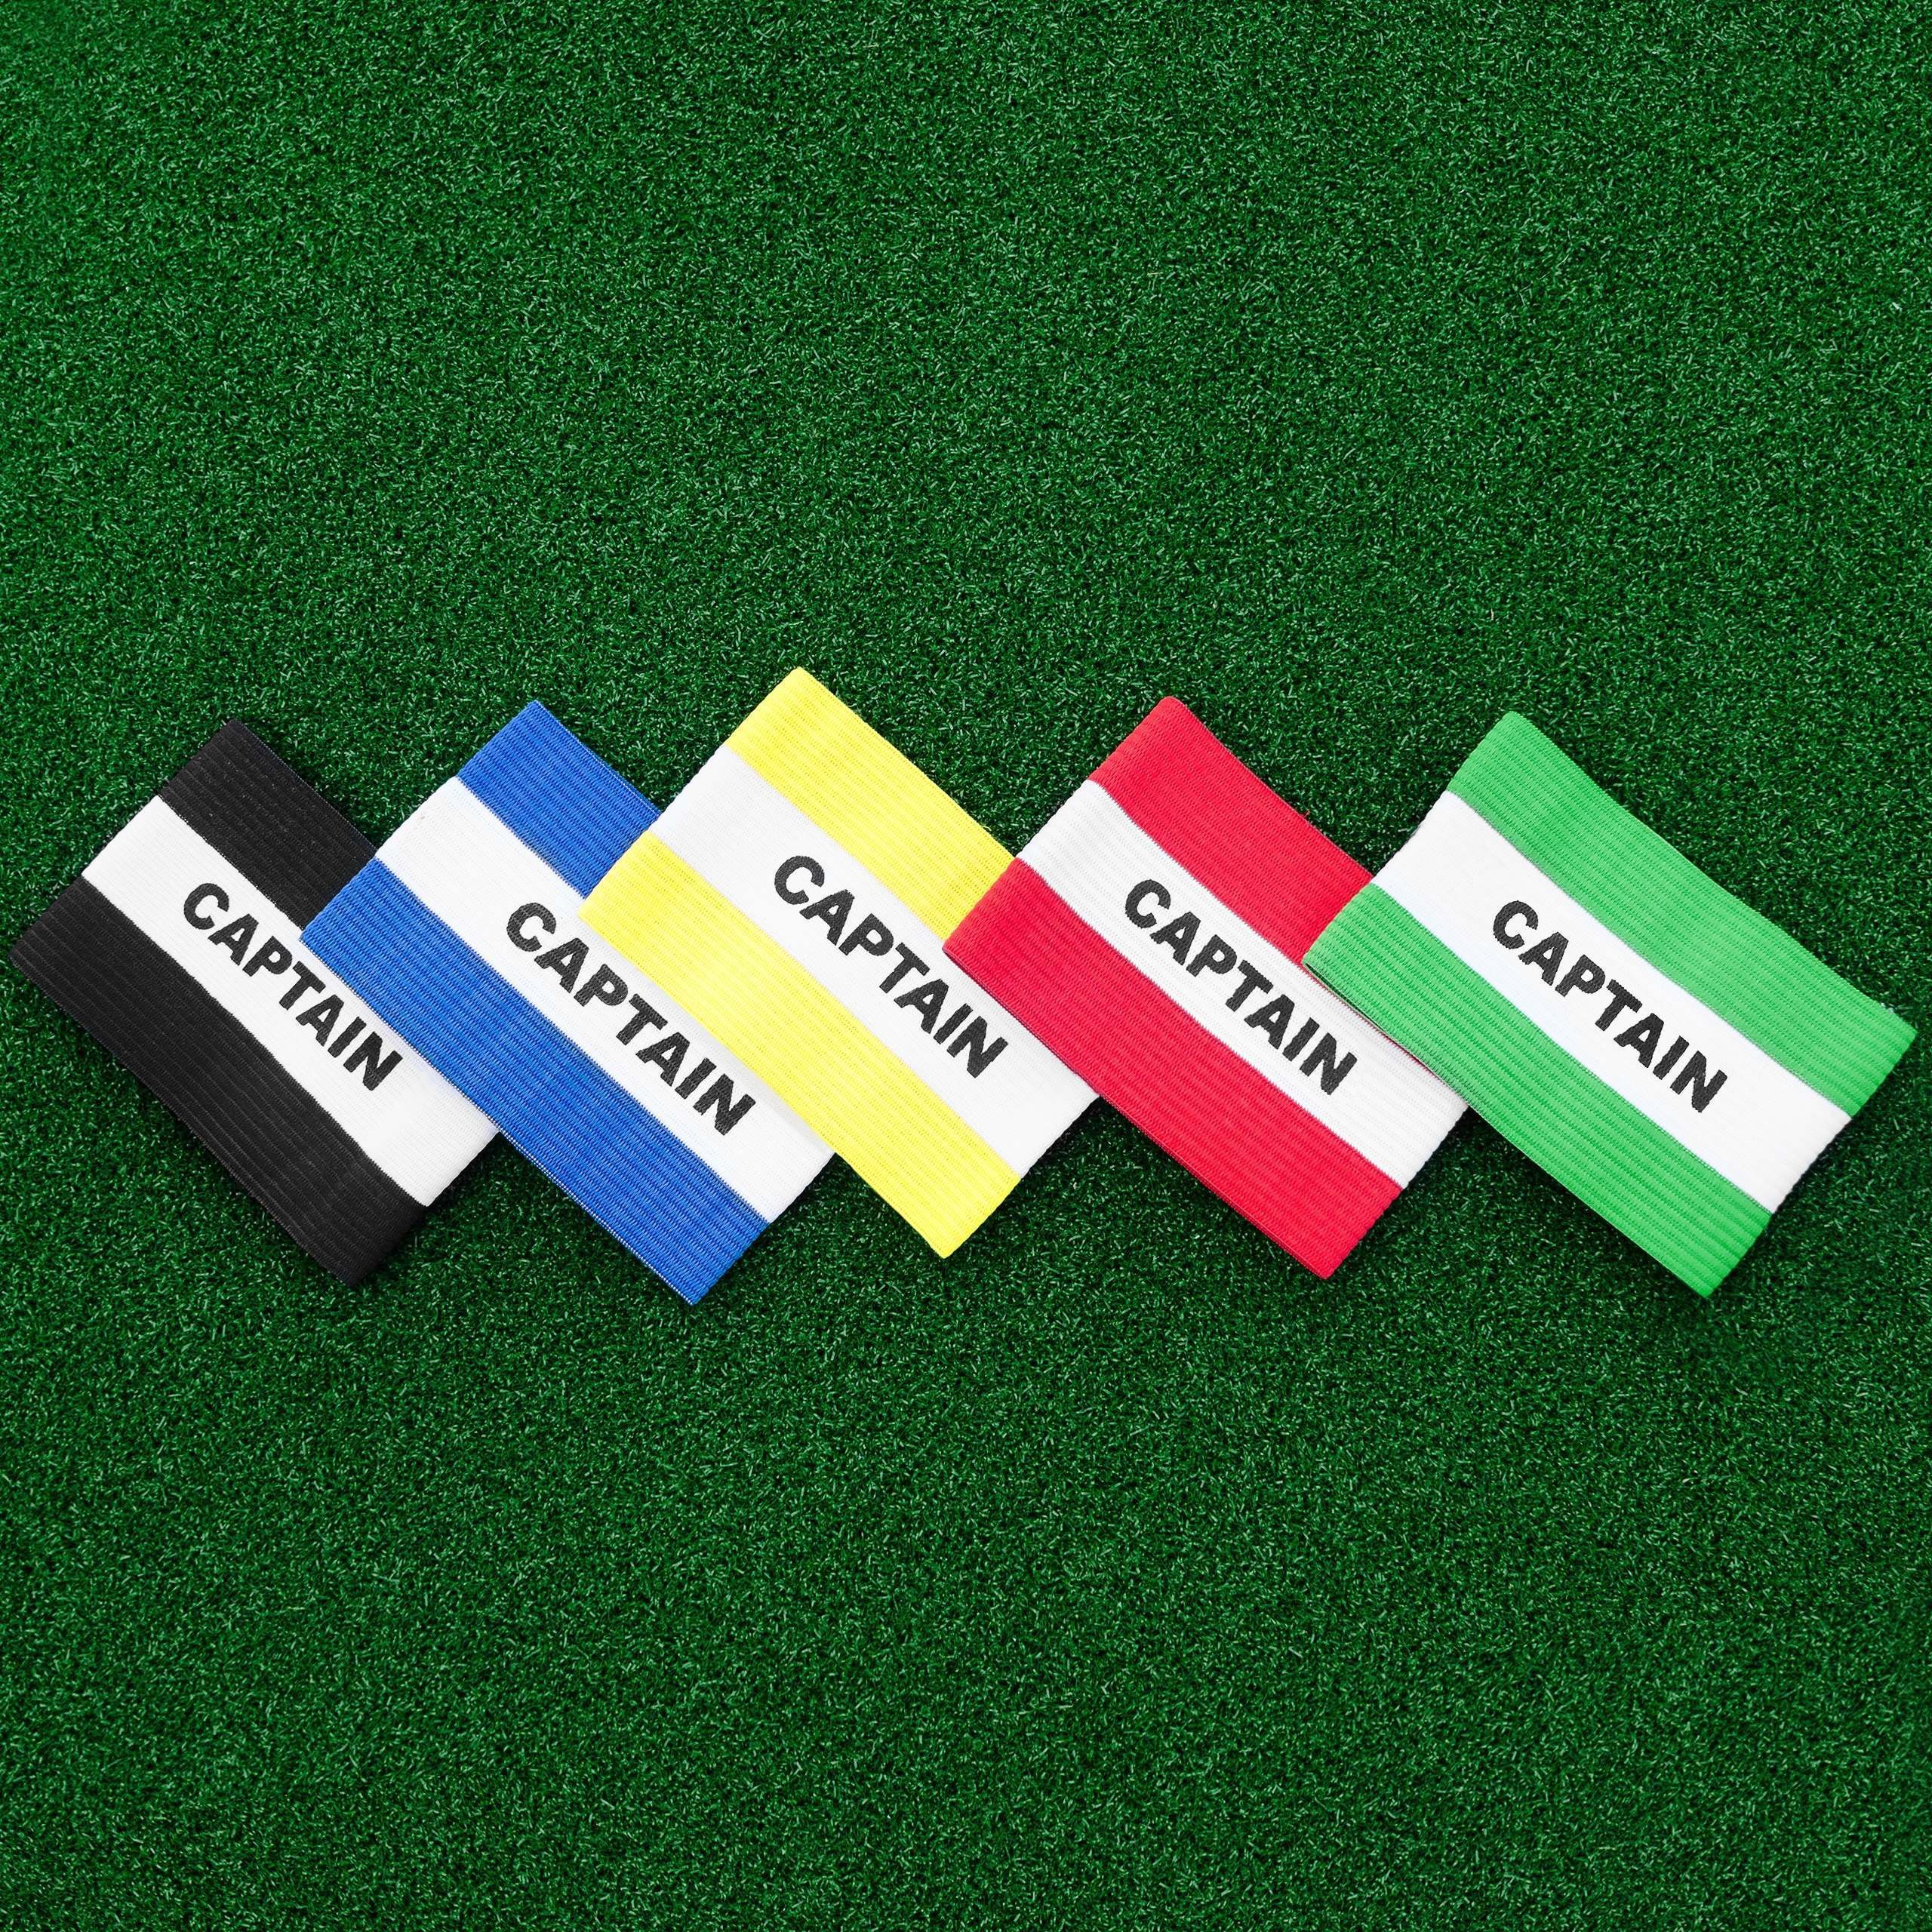 Football Team Captain's Armbands | Football Captain's Armbands (Range of Colours)